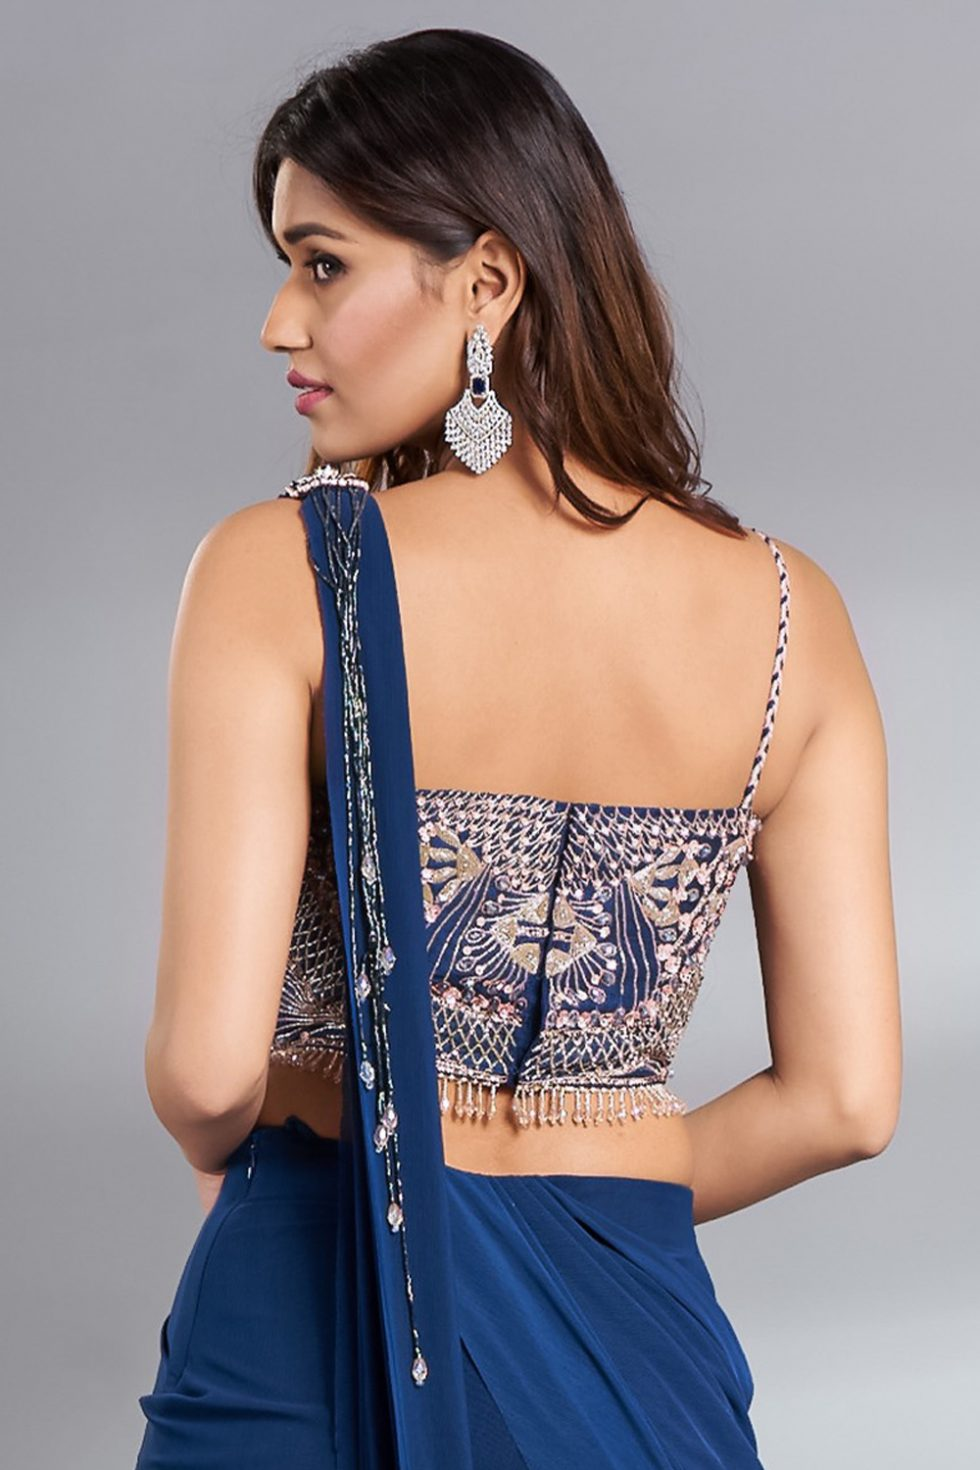 Deep blue cut out blouse with multi coloured contrast hand embroidery, tassels and braided straps